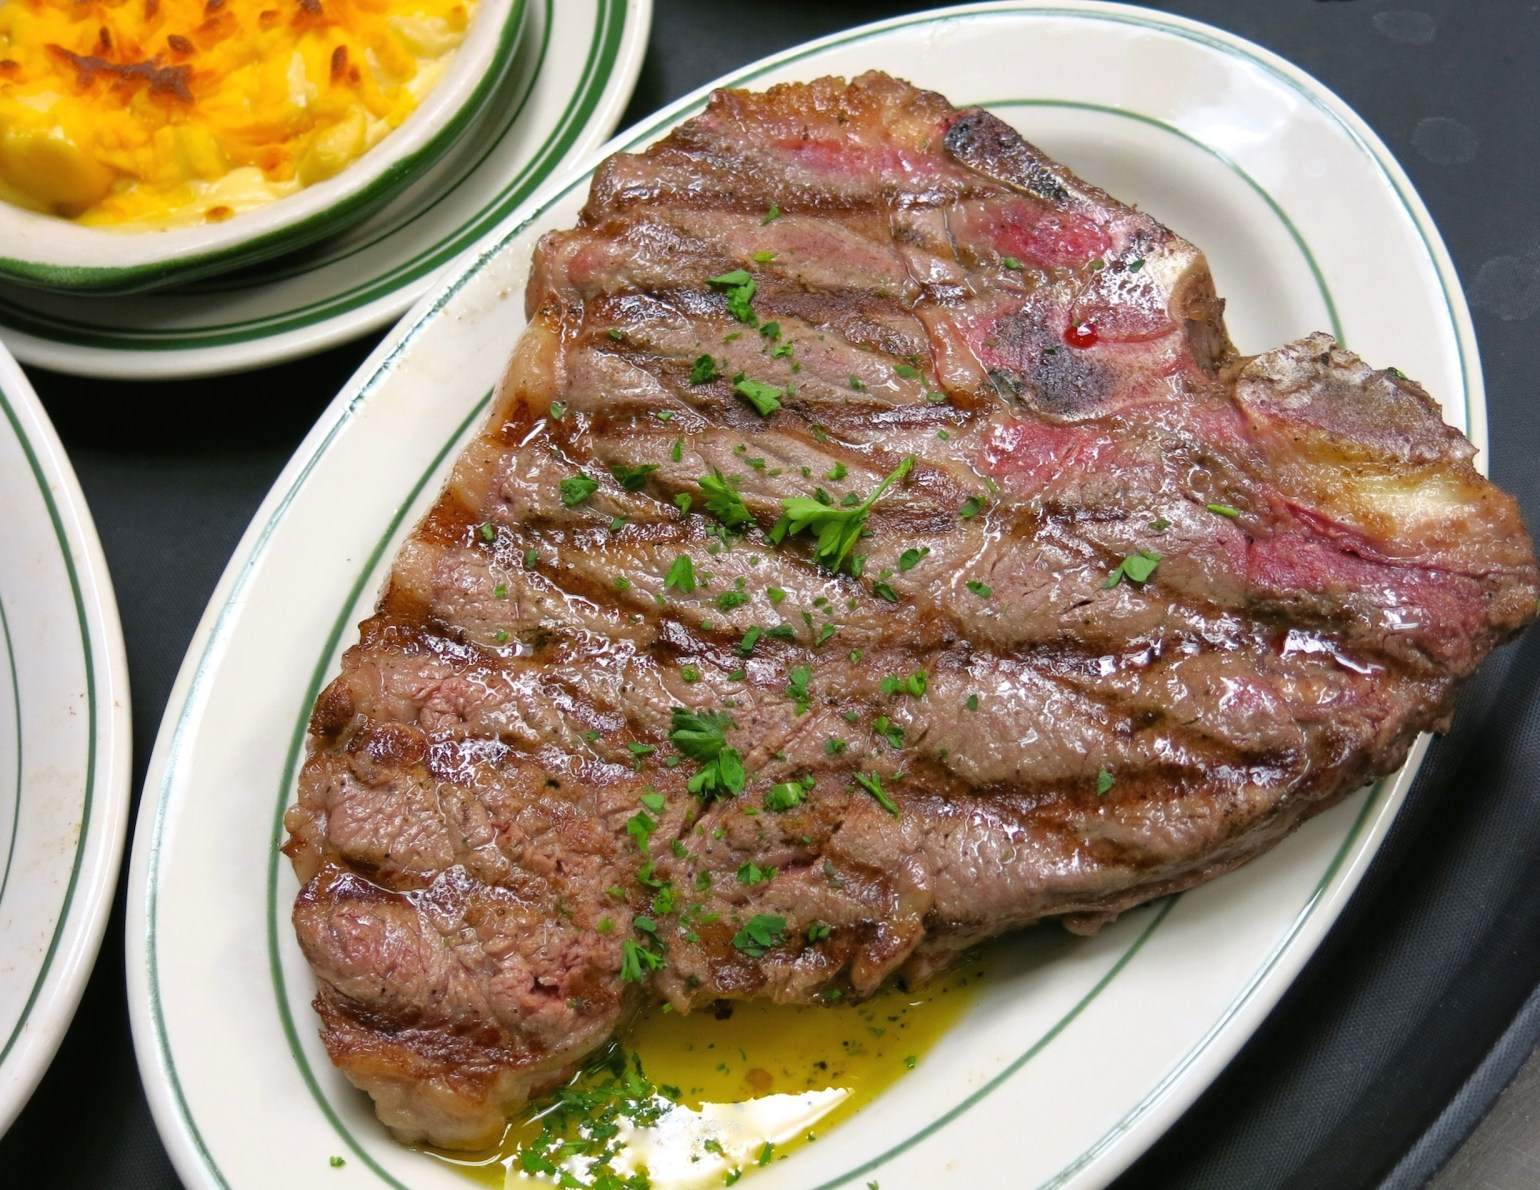 Steak fresh off the grill at Crescent City Steaks. (Photo: Christopher Garland.)